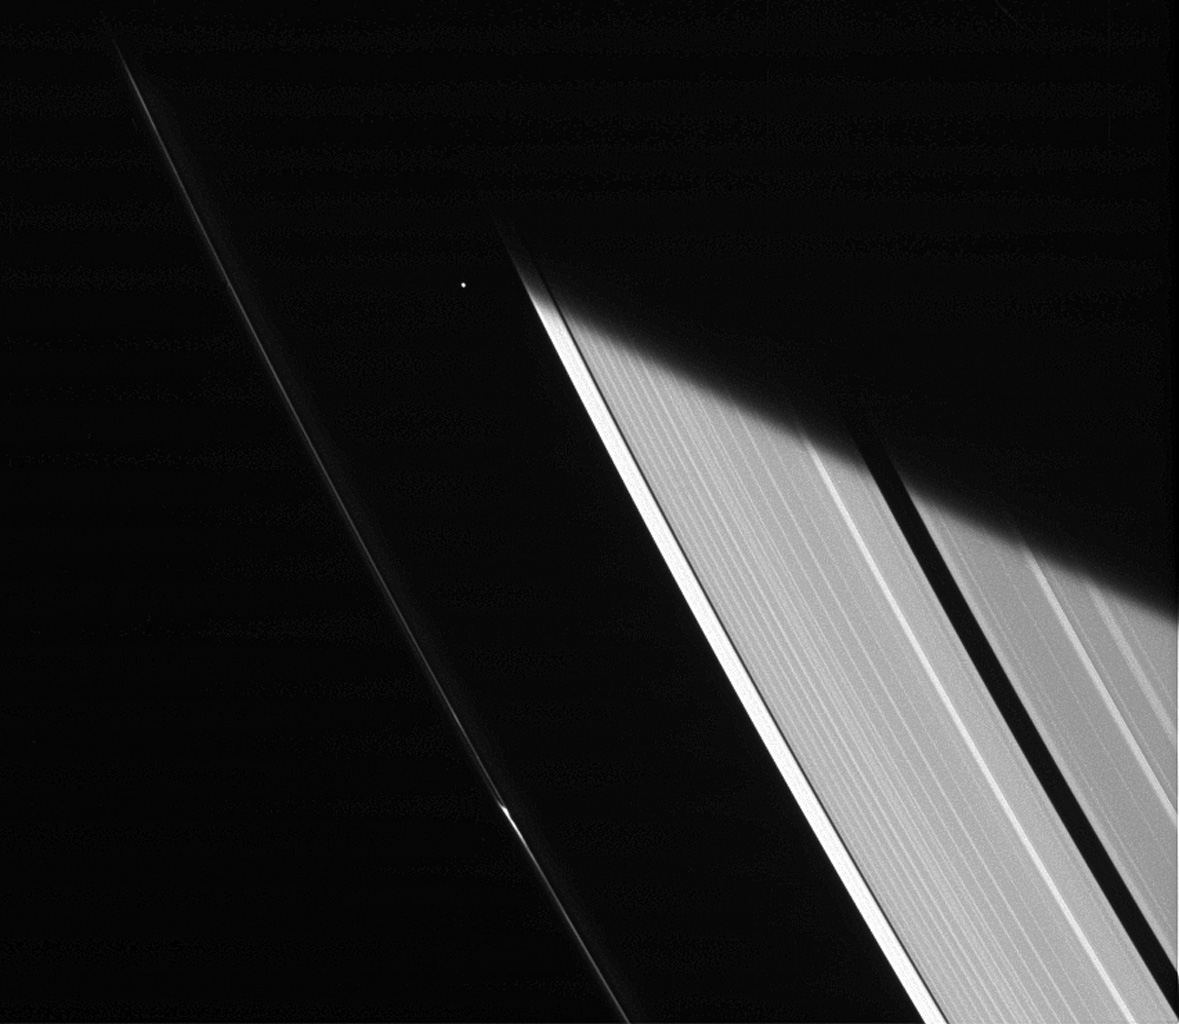 NASA's Cassini spacecraft captures a glimpse of the moon Atlas shortly after emerging from Saturn's shadow.